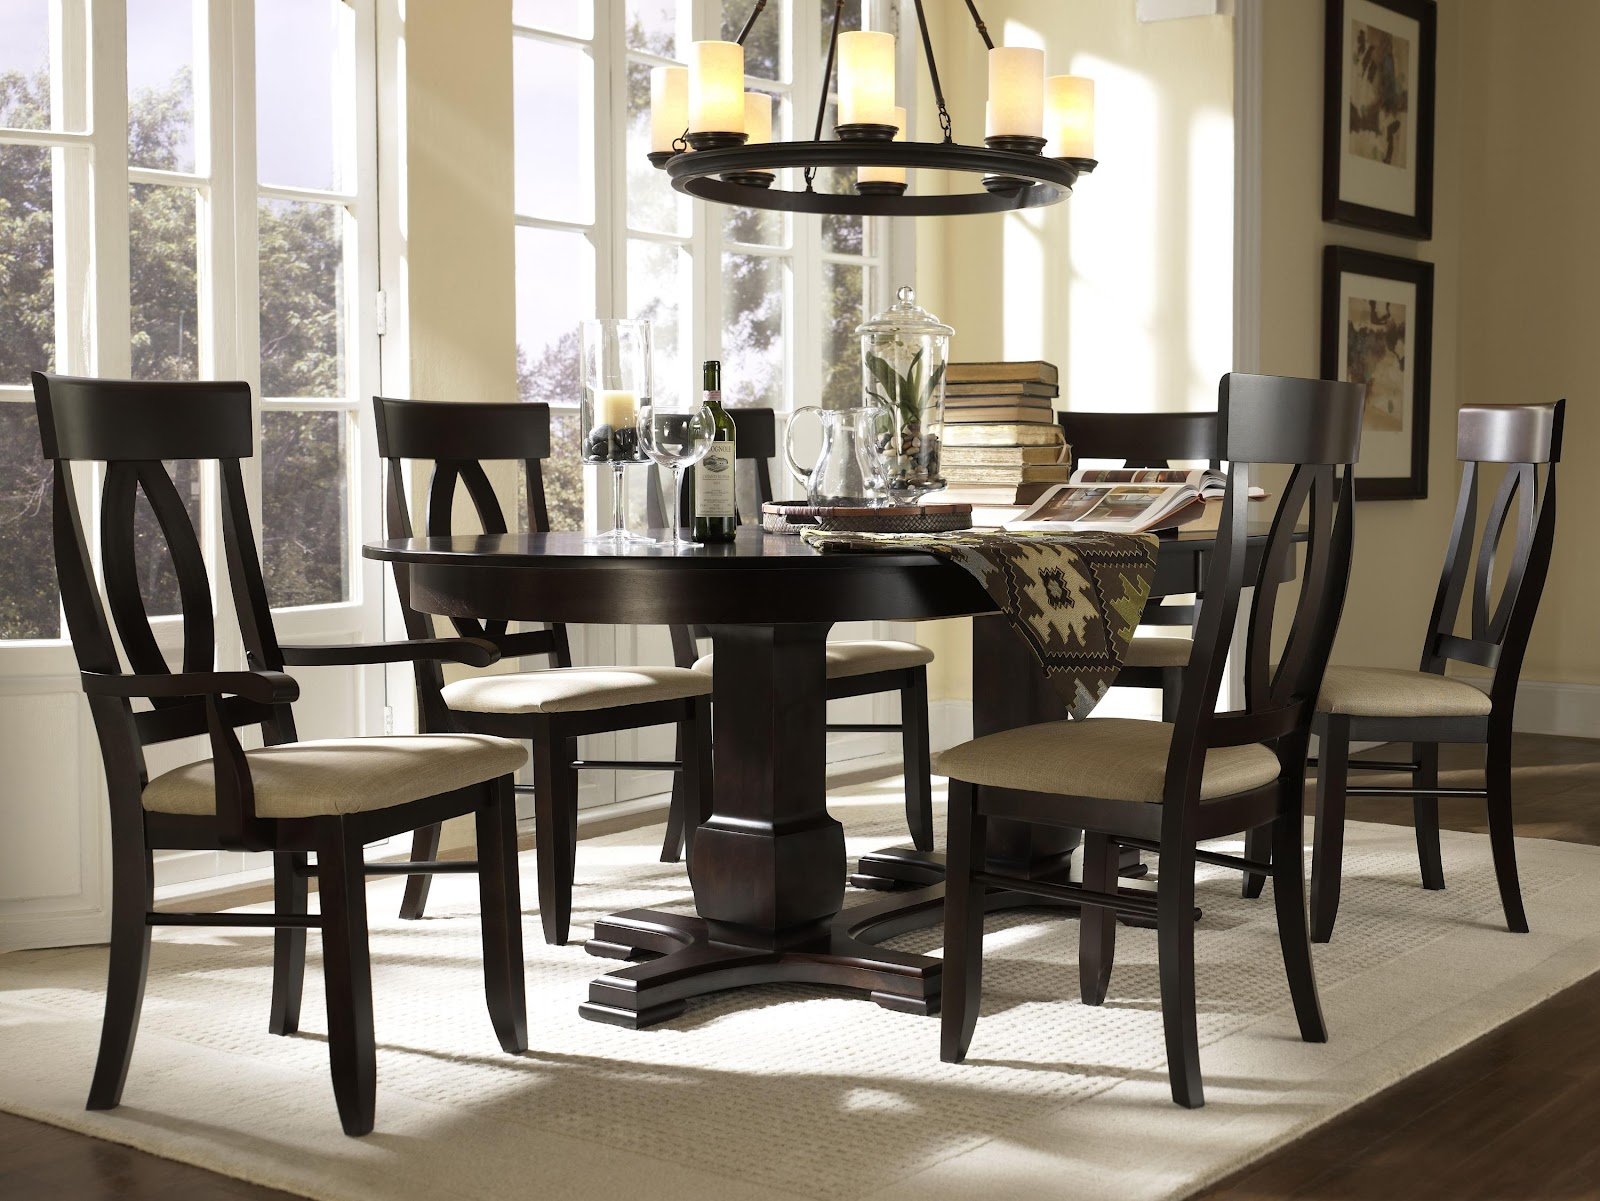 Canadel furniture long island new york ny dining room for Dinette furniture